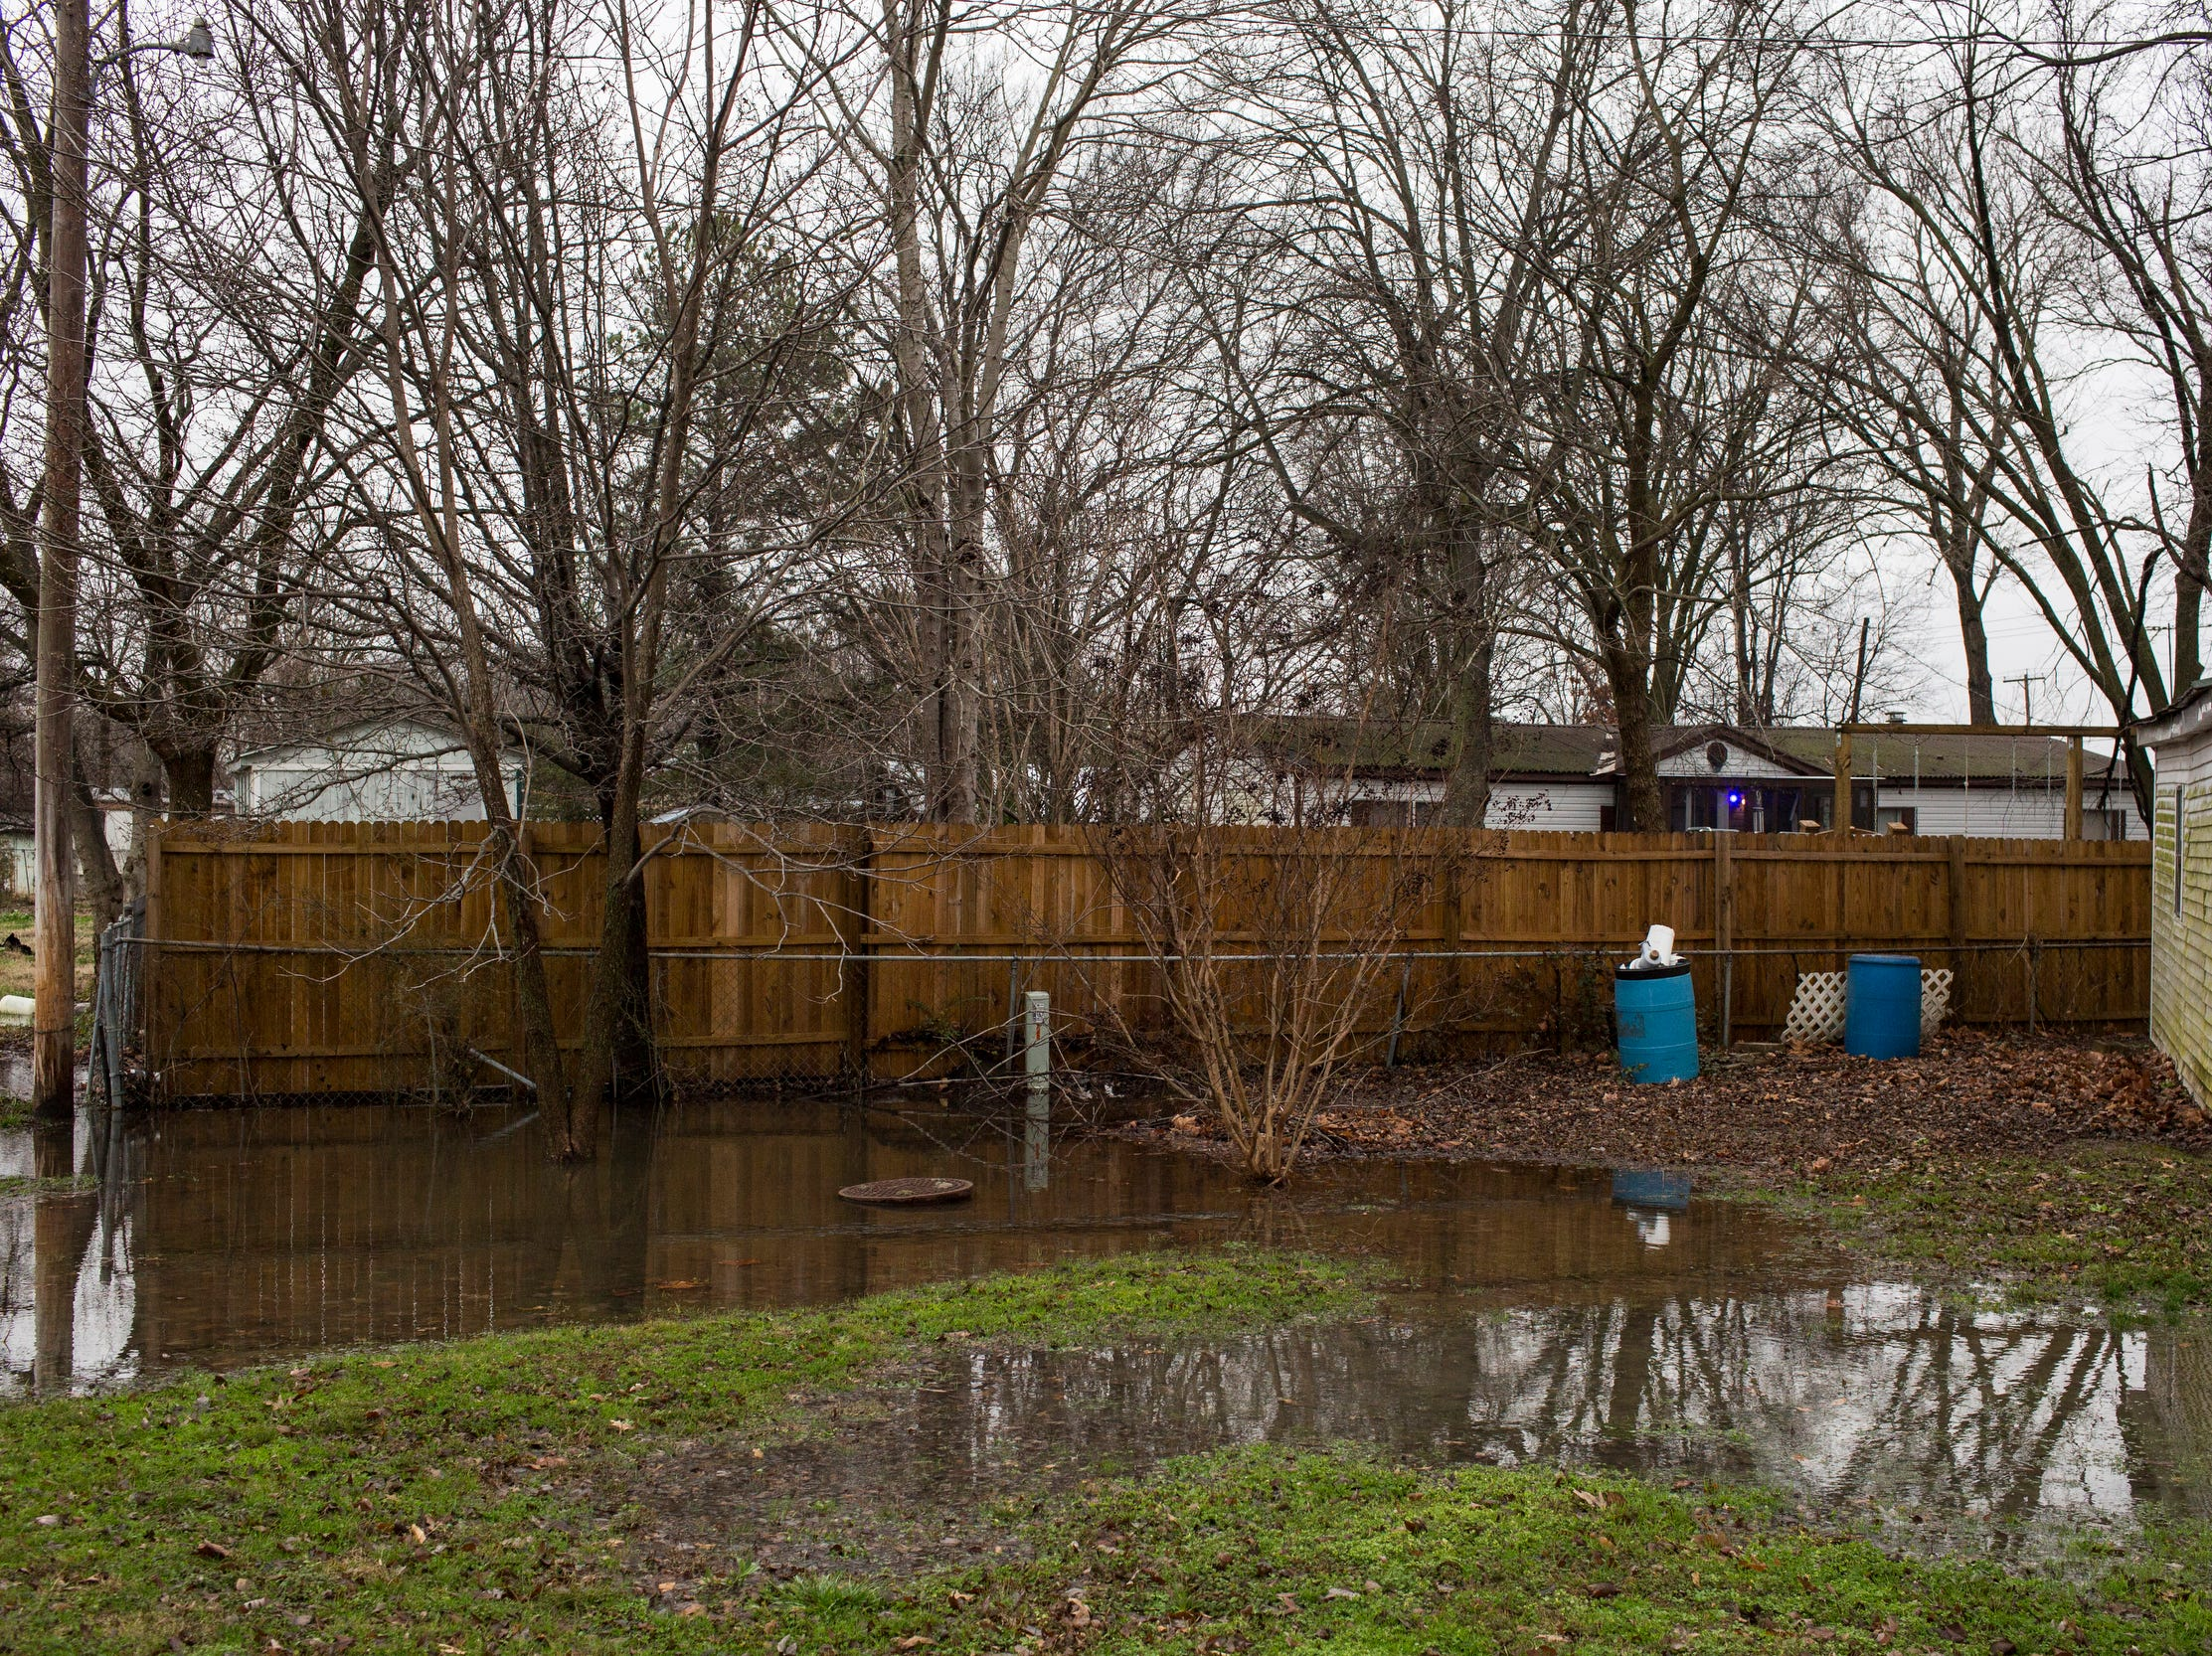 January 23, 2019 - Water from a recent rainfall is seen pooling throughout the Lakeshore community.